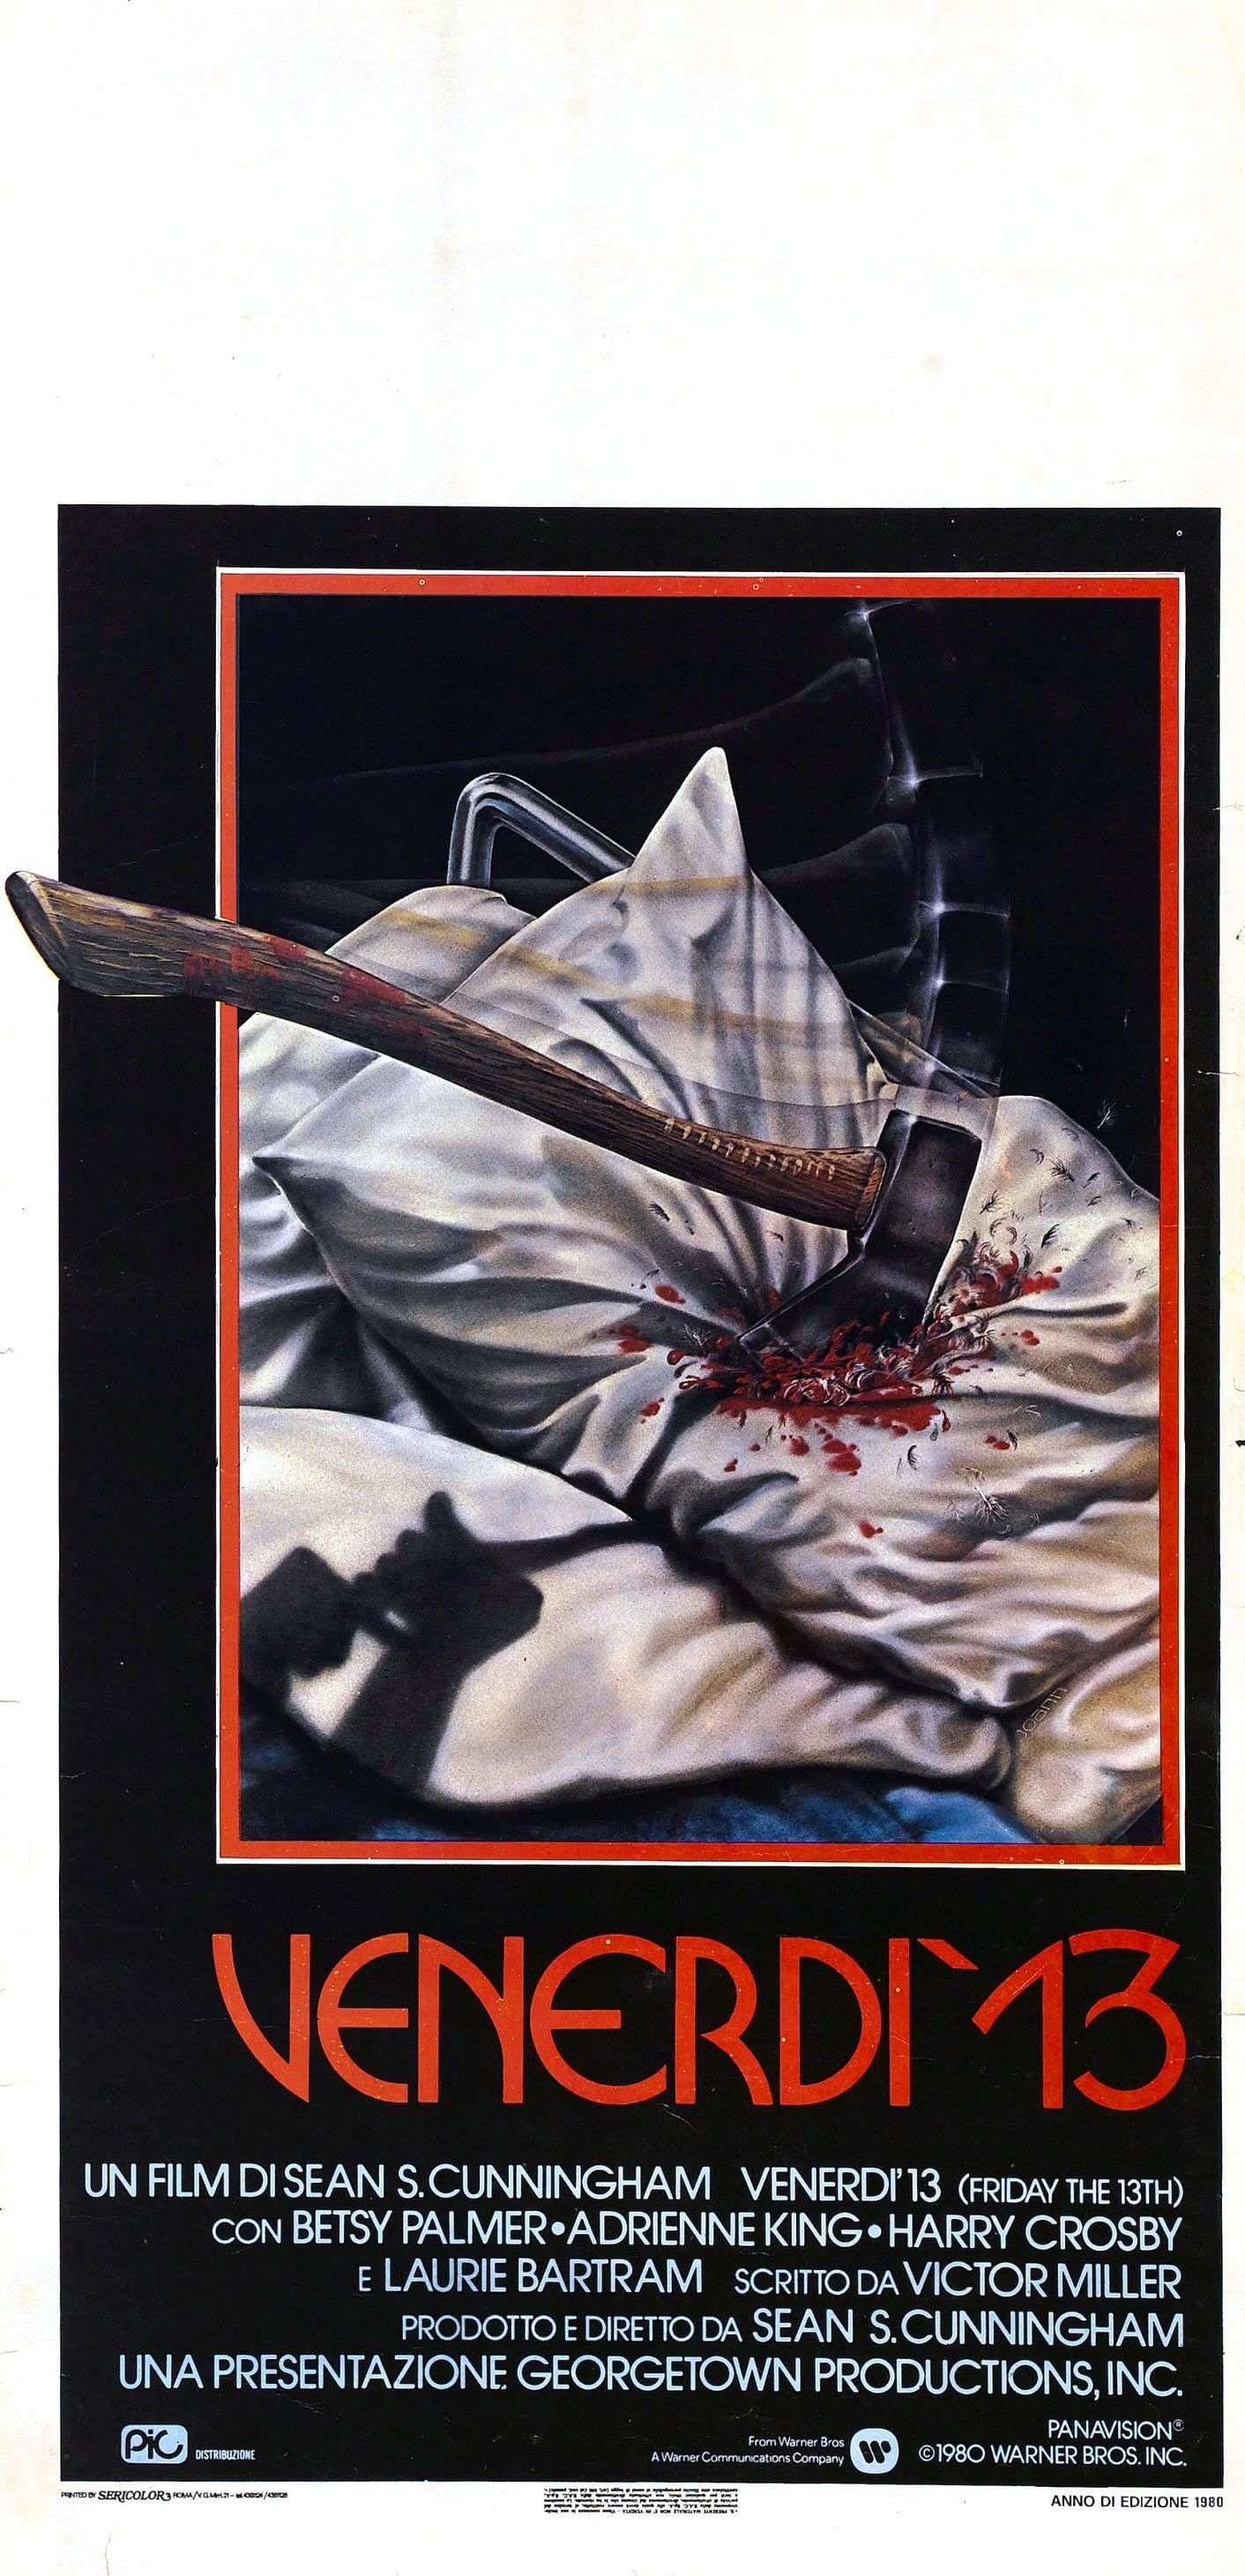 Friday the 13th franchise posters last road reviews